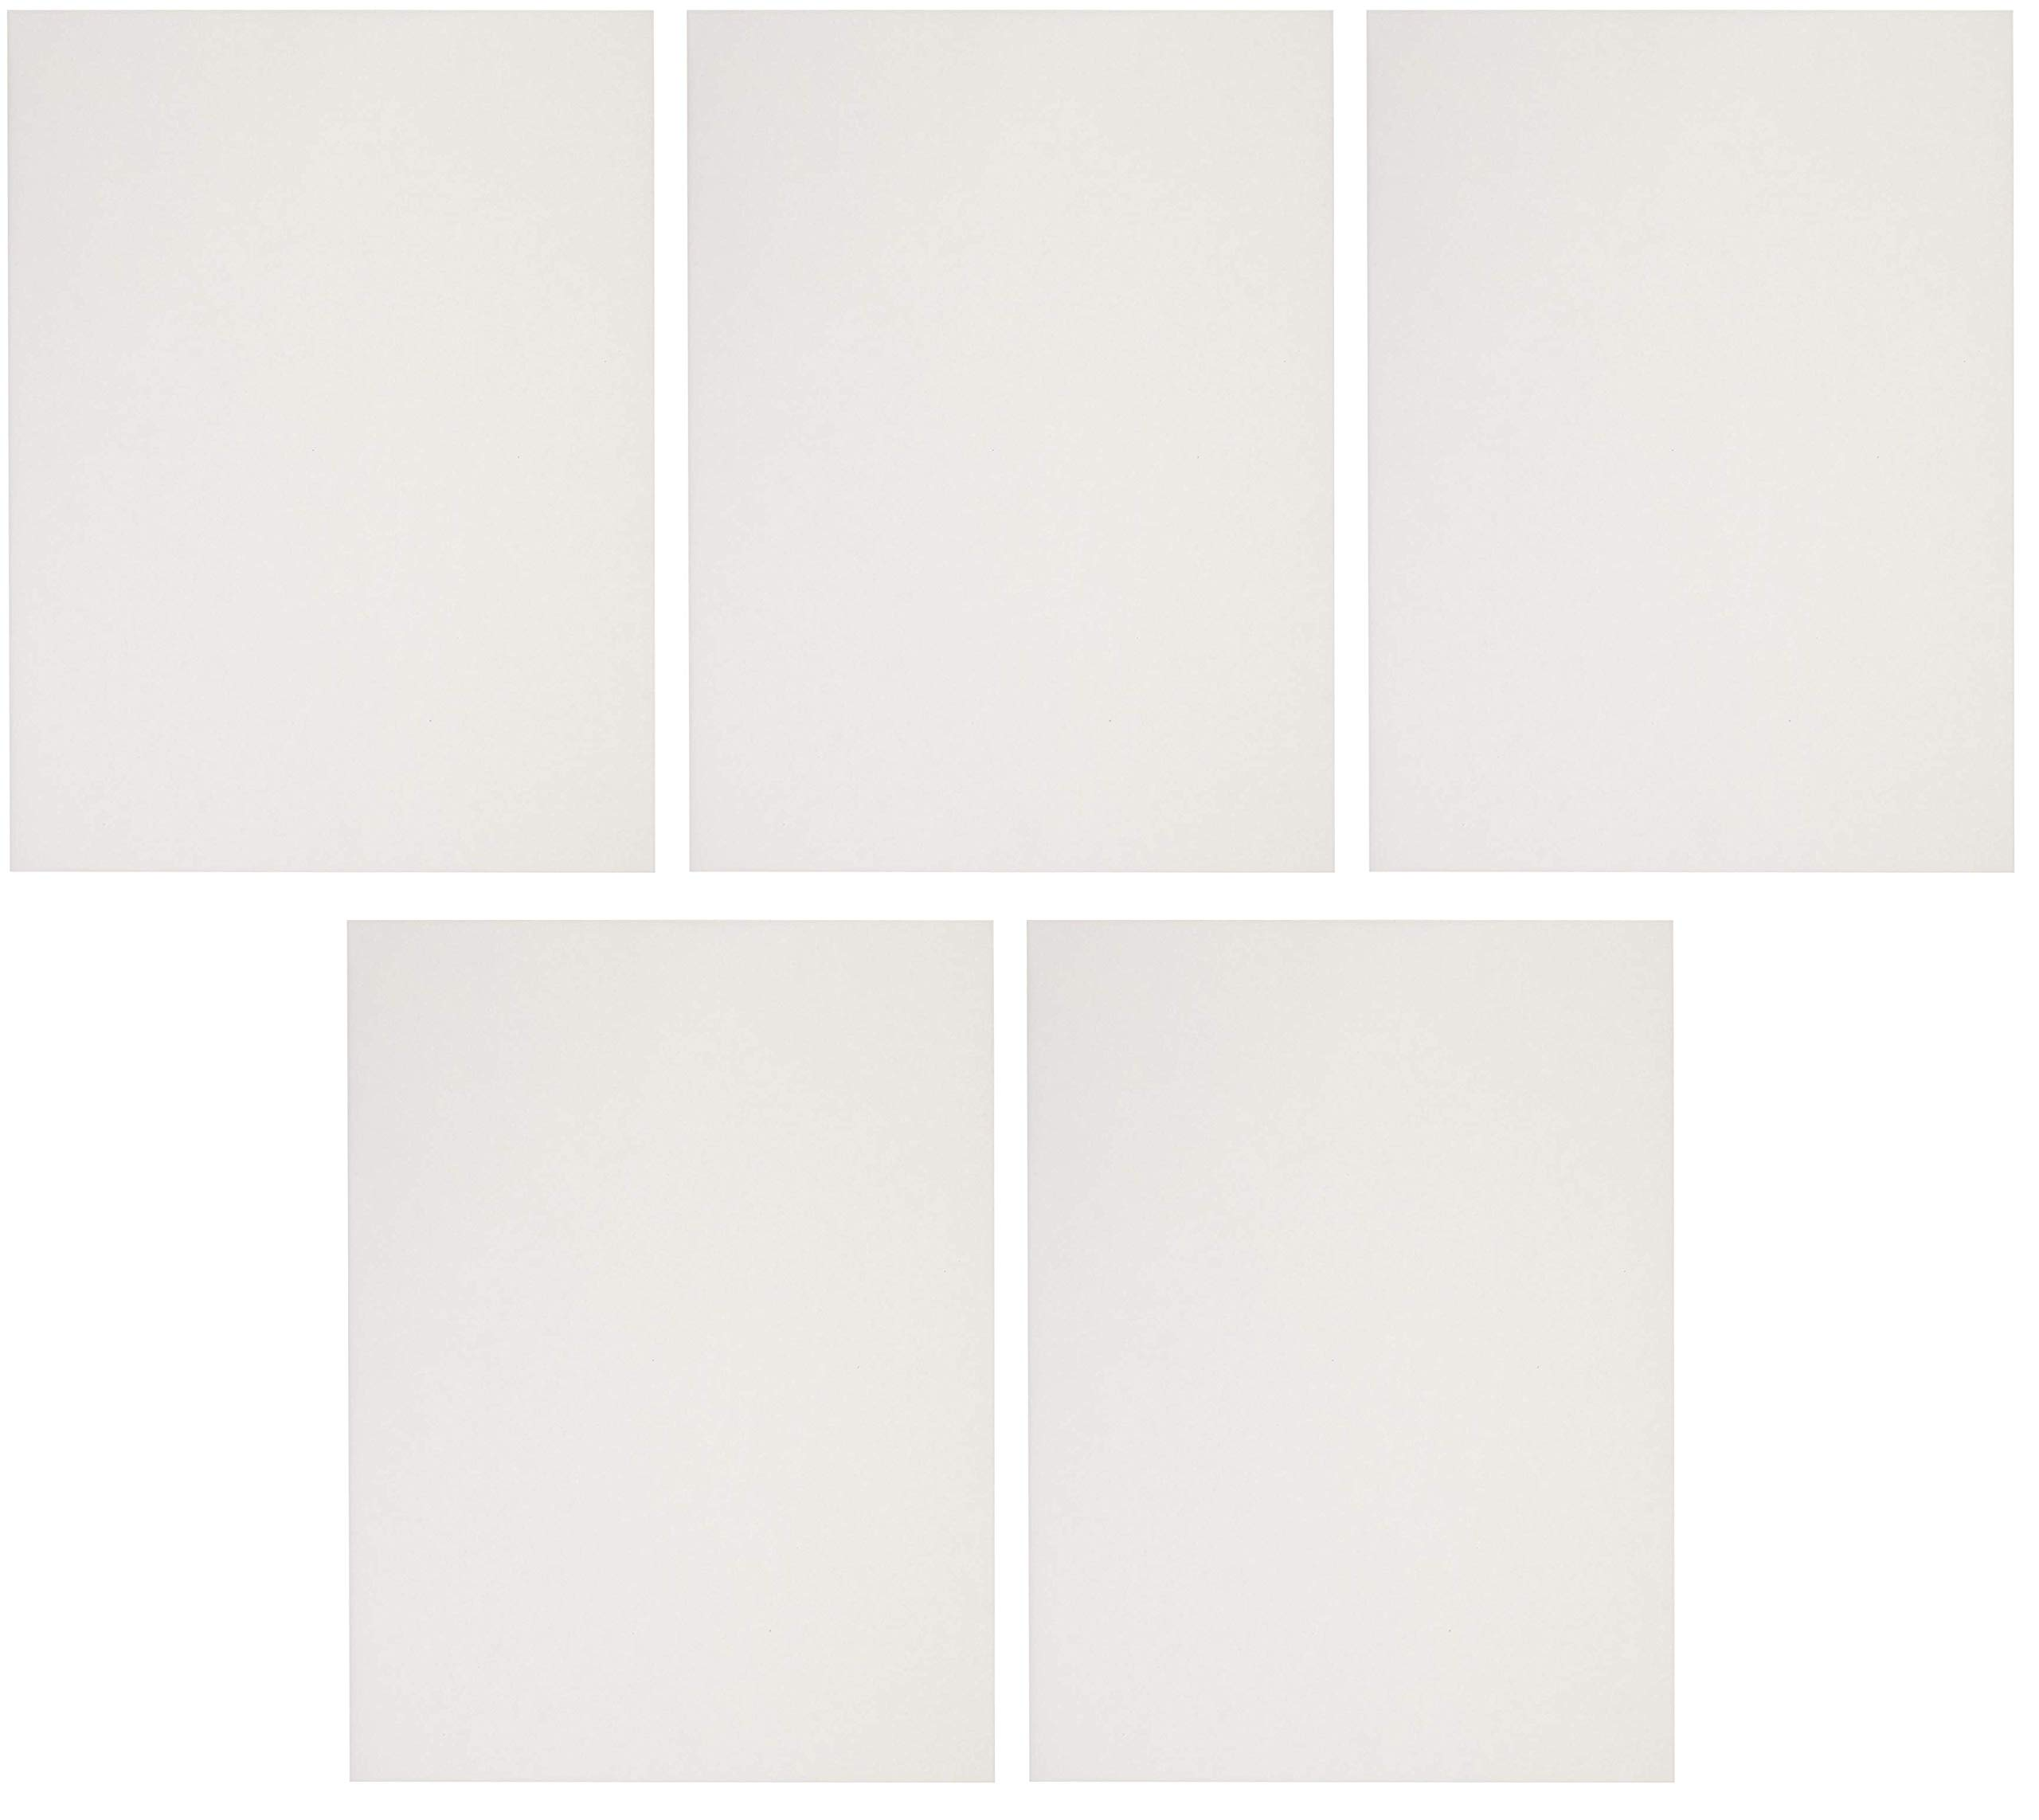 Sax Sulphite Drawing Paper, 70 lb, 9 x 12 Inches, Extra-White, Pack of 500 (Вundlе оf Fіvе)